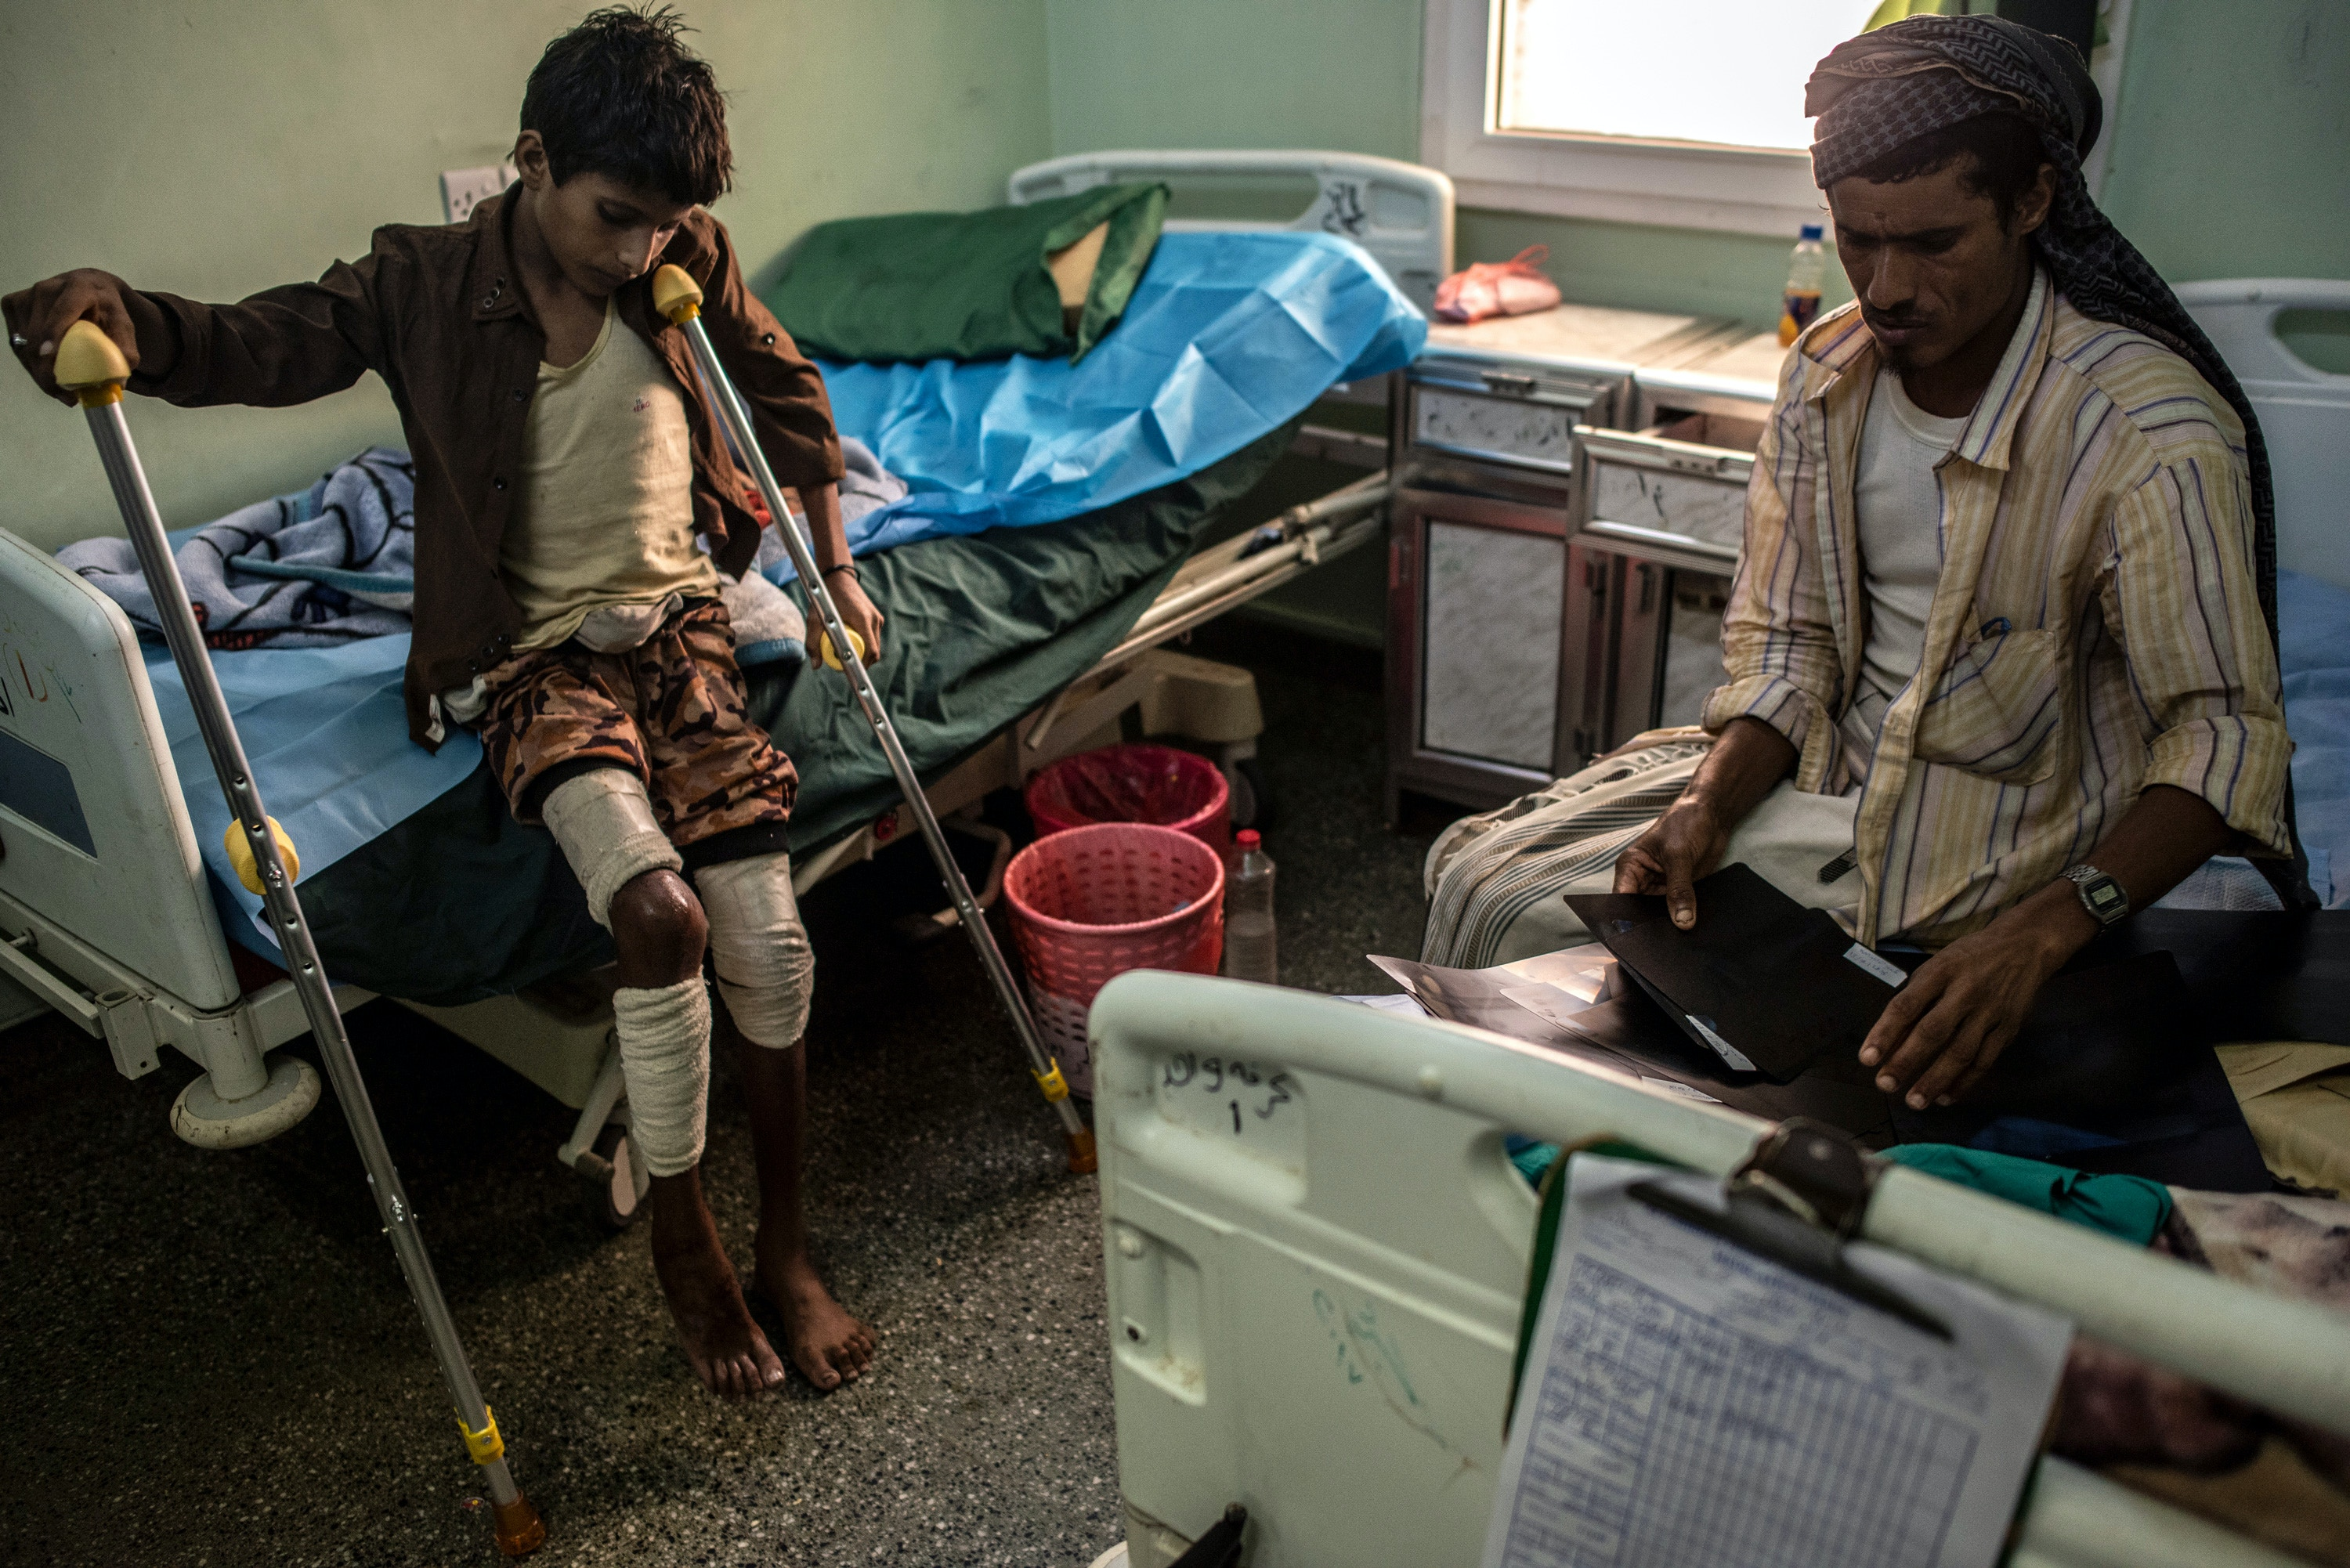 ADEN, YEMEN - SEPTEMBER 23: Humedan Hussin Abdullah, sits with father at a government hospital bed on September 23, 2018 in Aden, Yemen. Abdullah is waiting in the hospital to have shrapnel removed from his leg, an injury he sustained in Hodeidah province that killed two of his family members. A coalition military campaign has moved west along Yemen's coast toward Hodeidah, where increasingly bloody battles have killed hundreds since June, putting the country's fragile food supply at risk. (Photo by Andrew Renneisen/Getty Images)